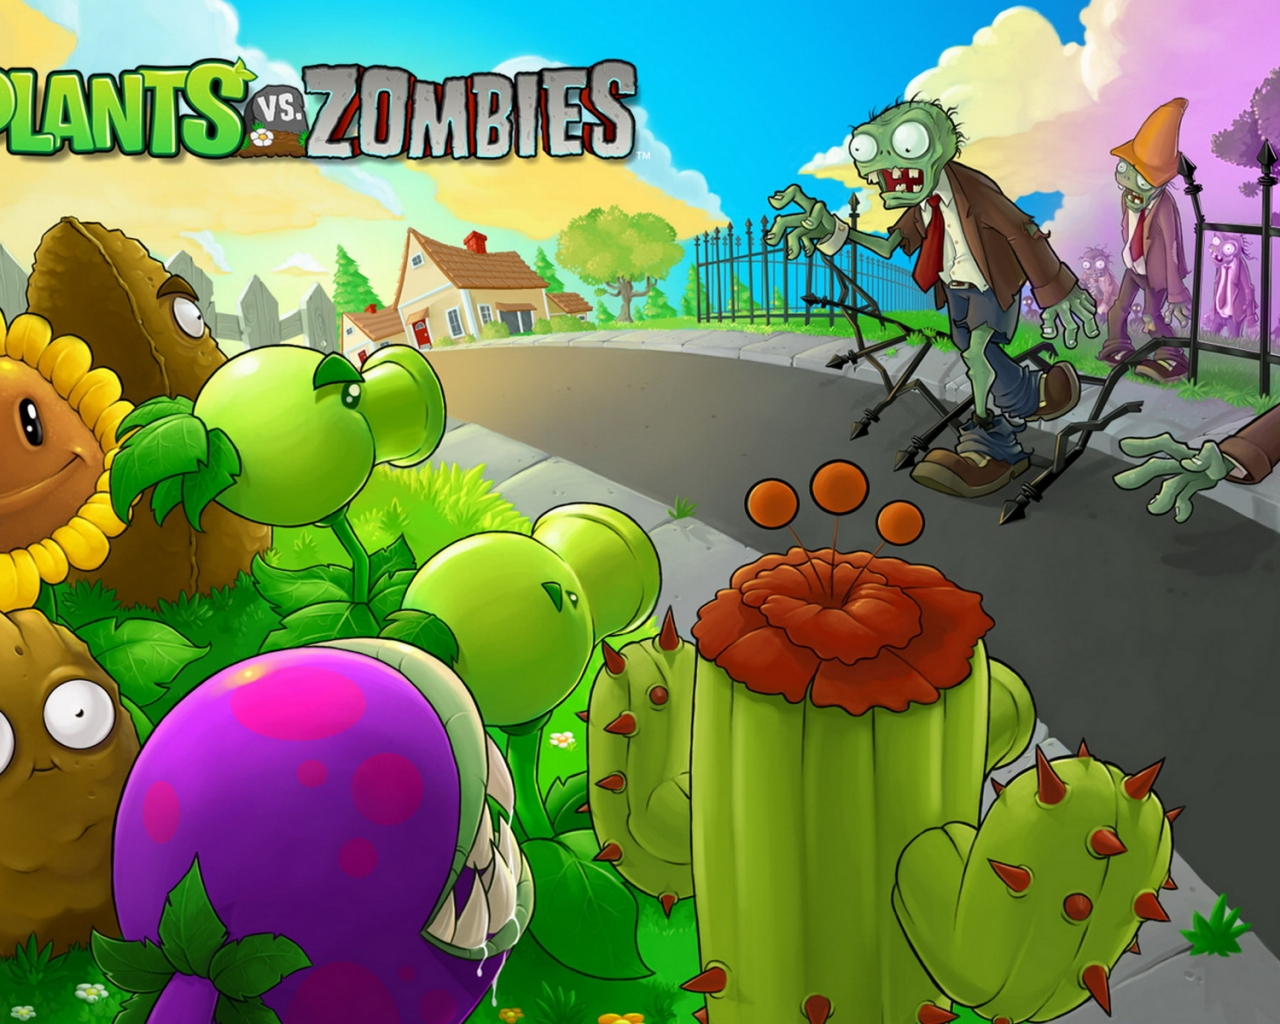 Plants vs. Zombies - 1280x1024